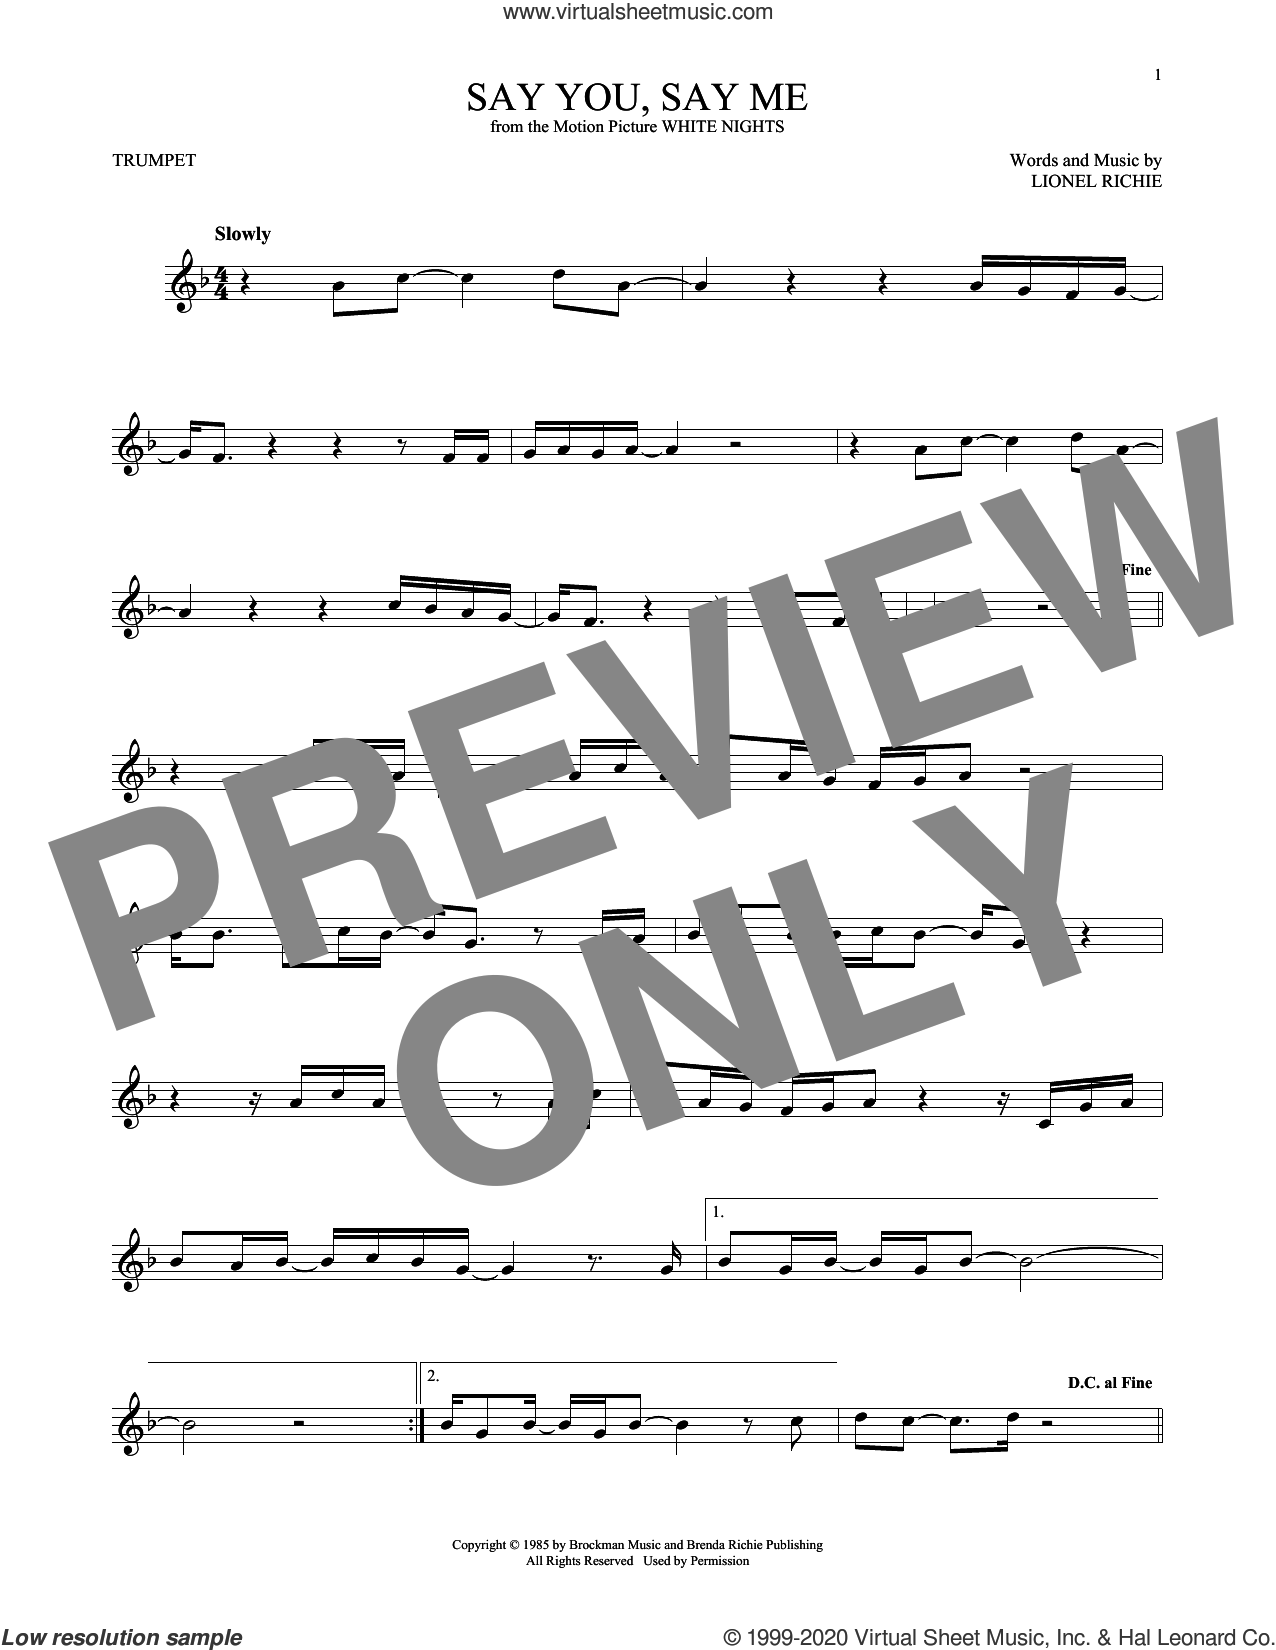 Say You, Say Me sheet music for trumpet solo by Lionel Richie, intermediate skill level